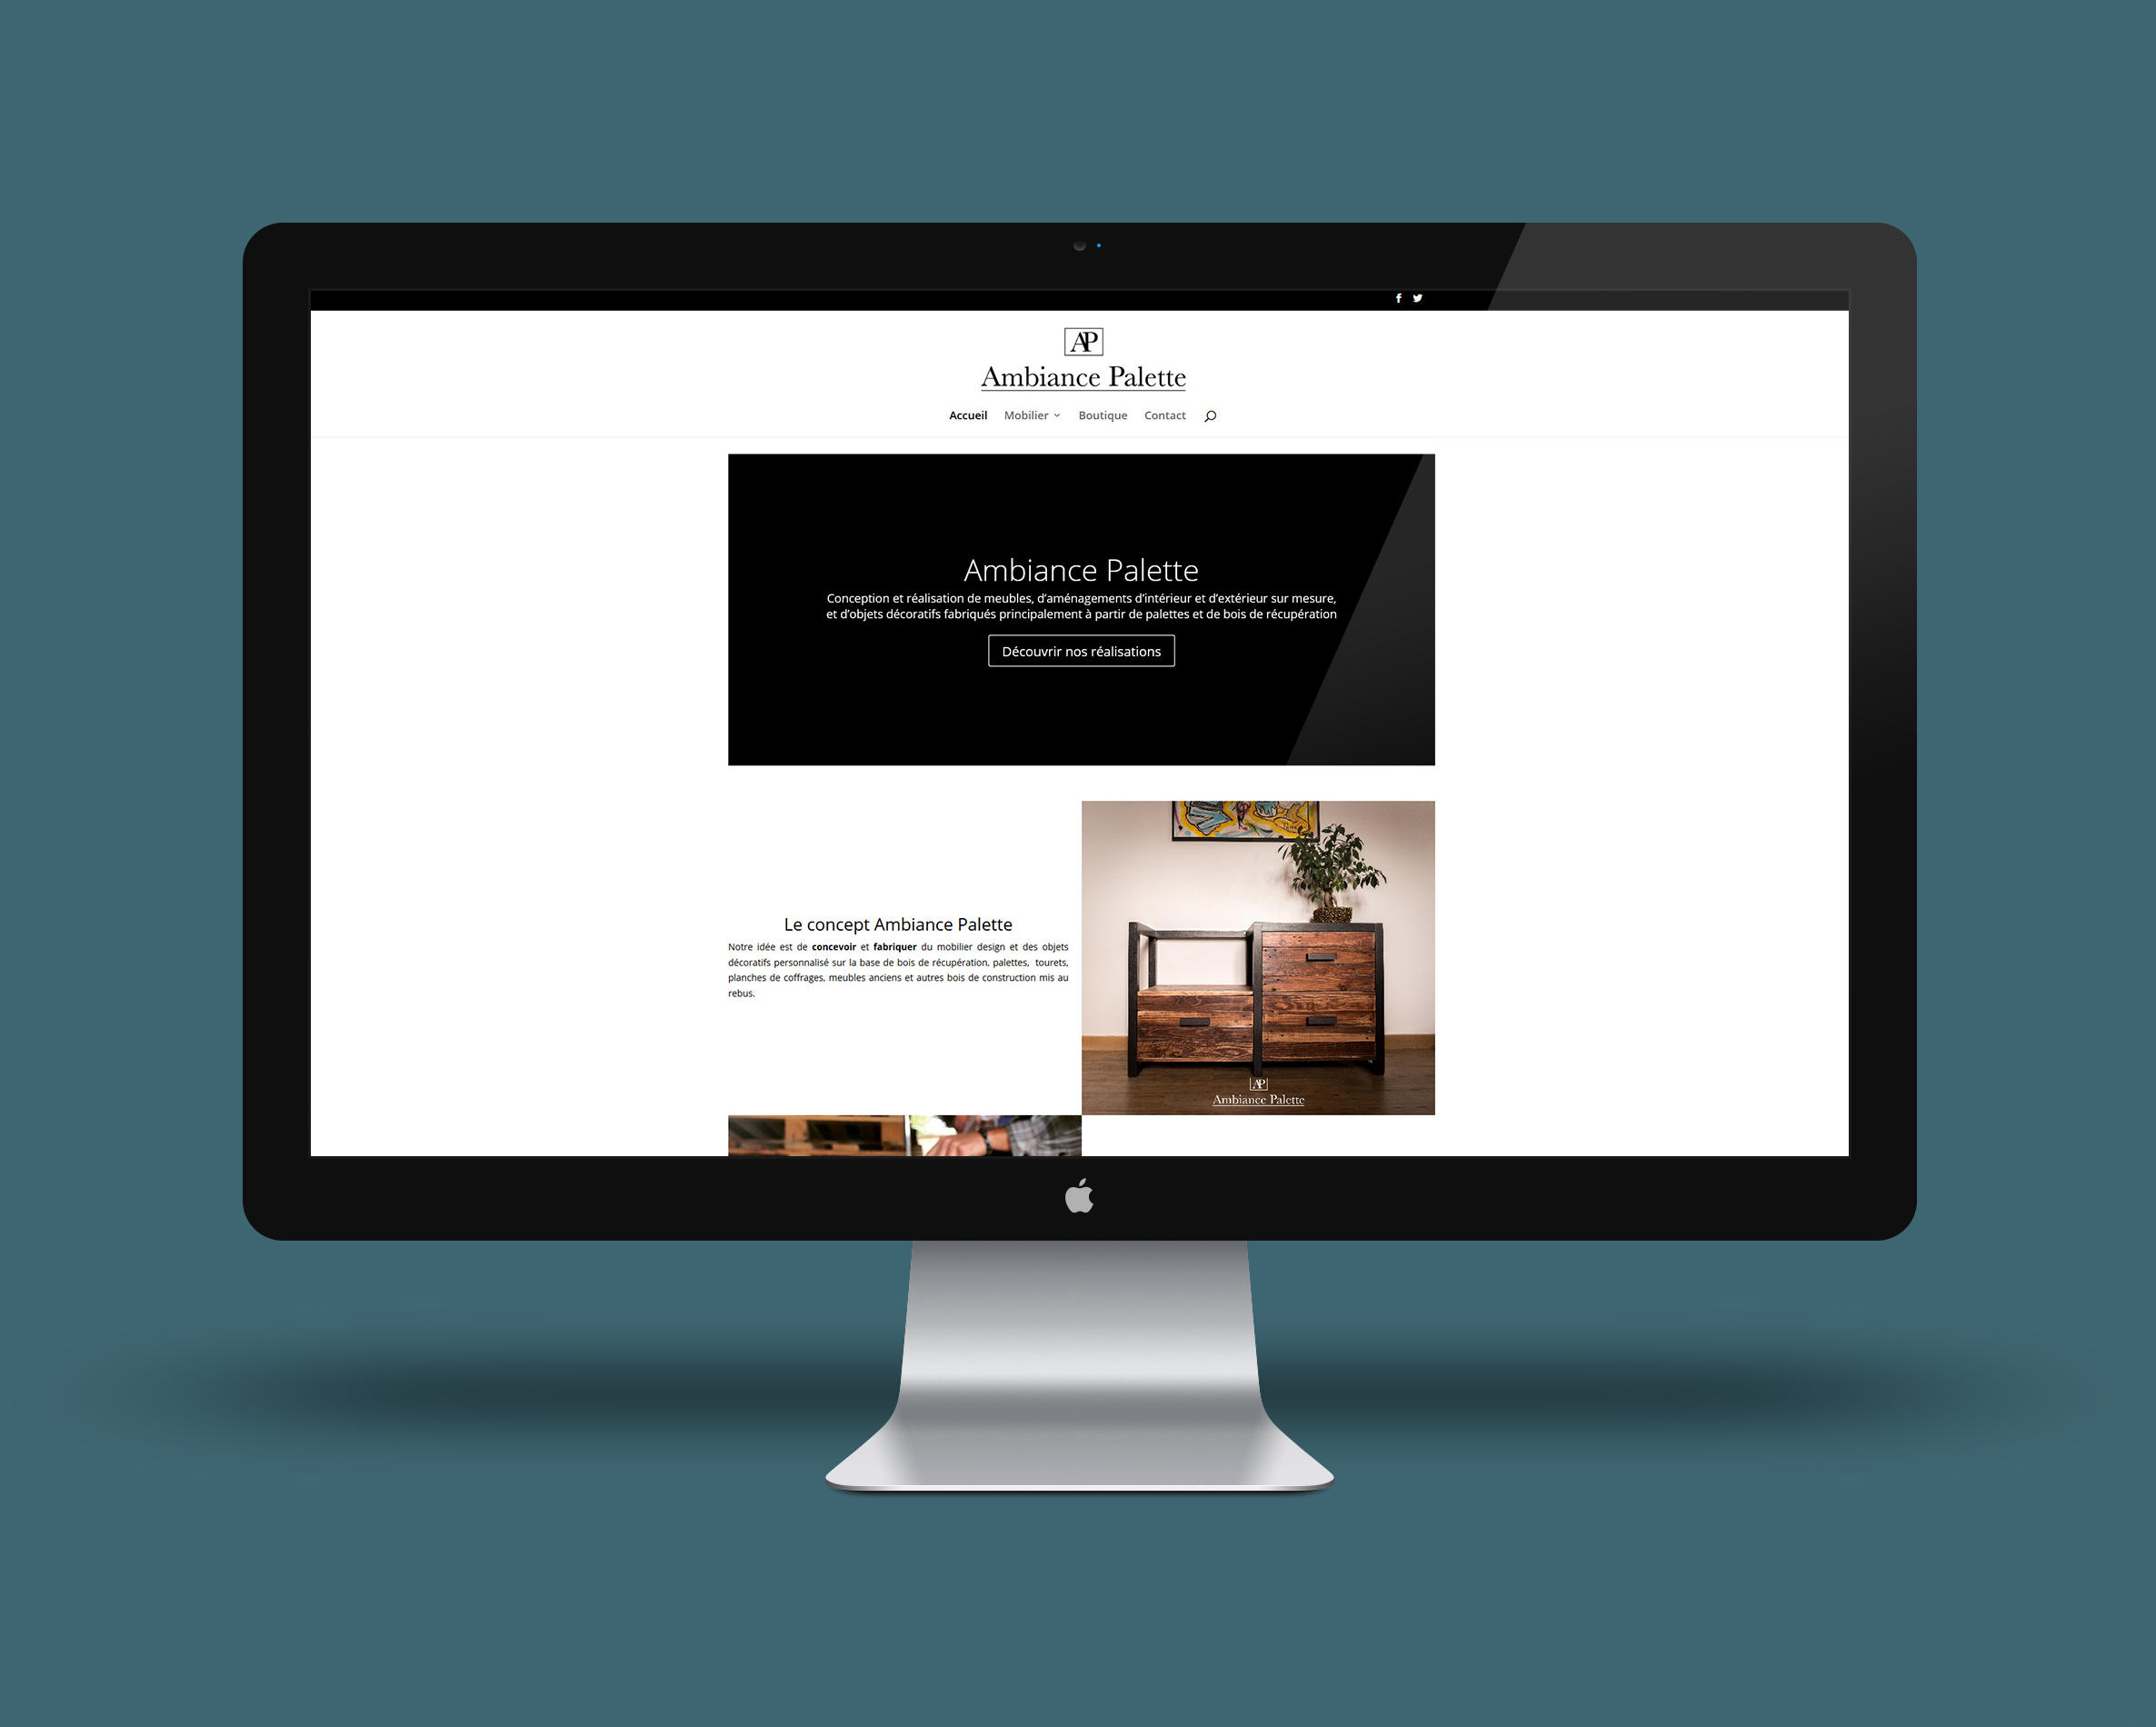 ambiance-palette-pages-site